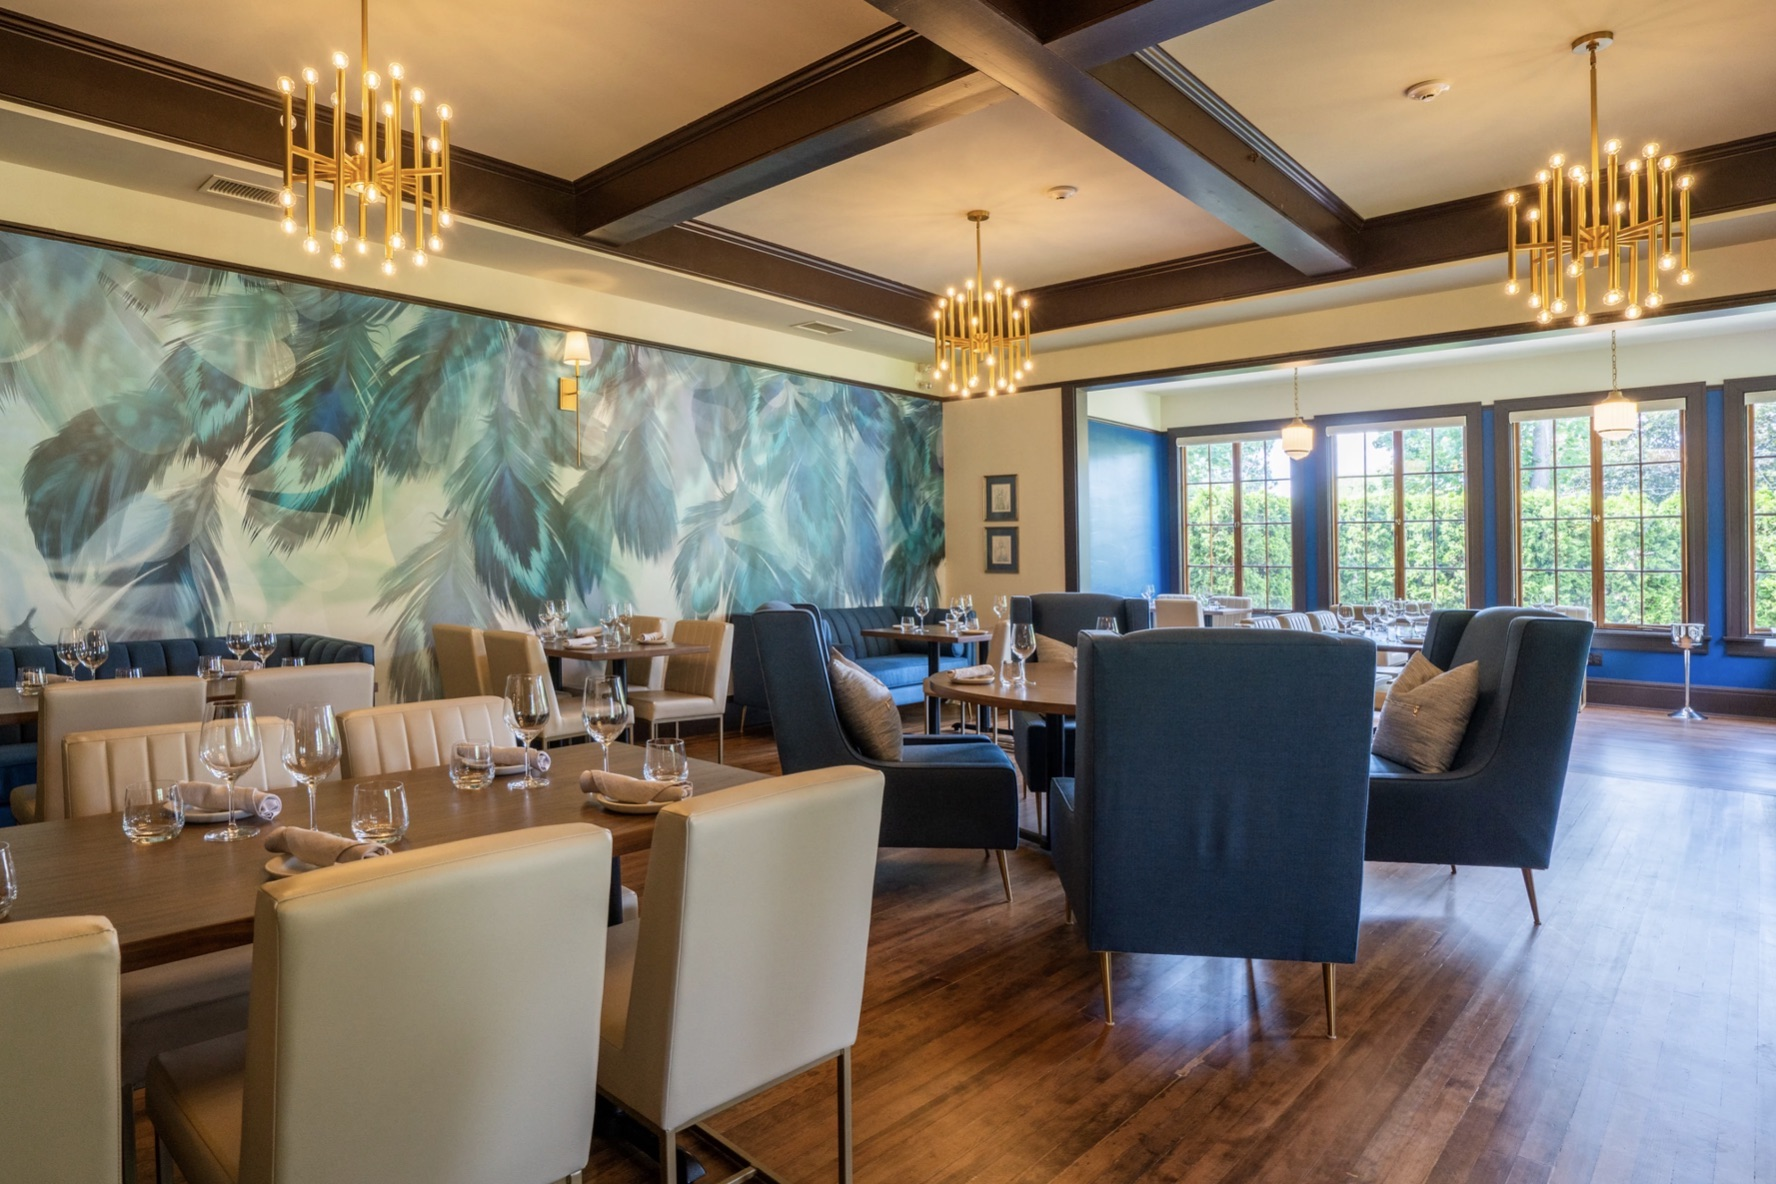 Naramata Inn Announces Series Of Creative Wine, Food And Guest Chef Events photo